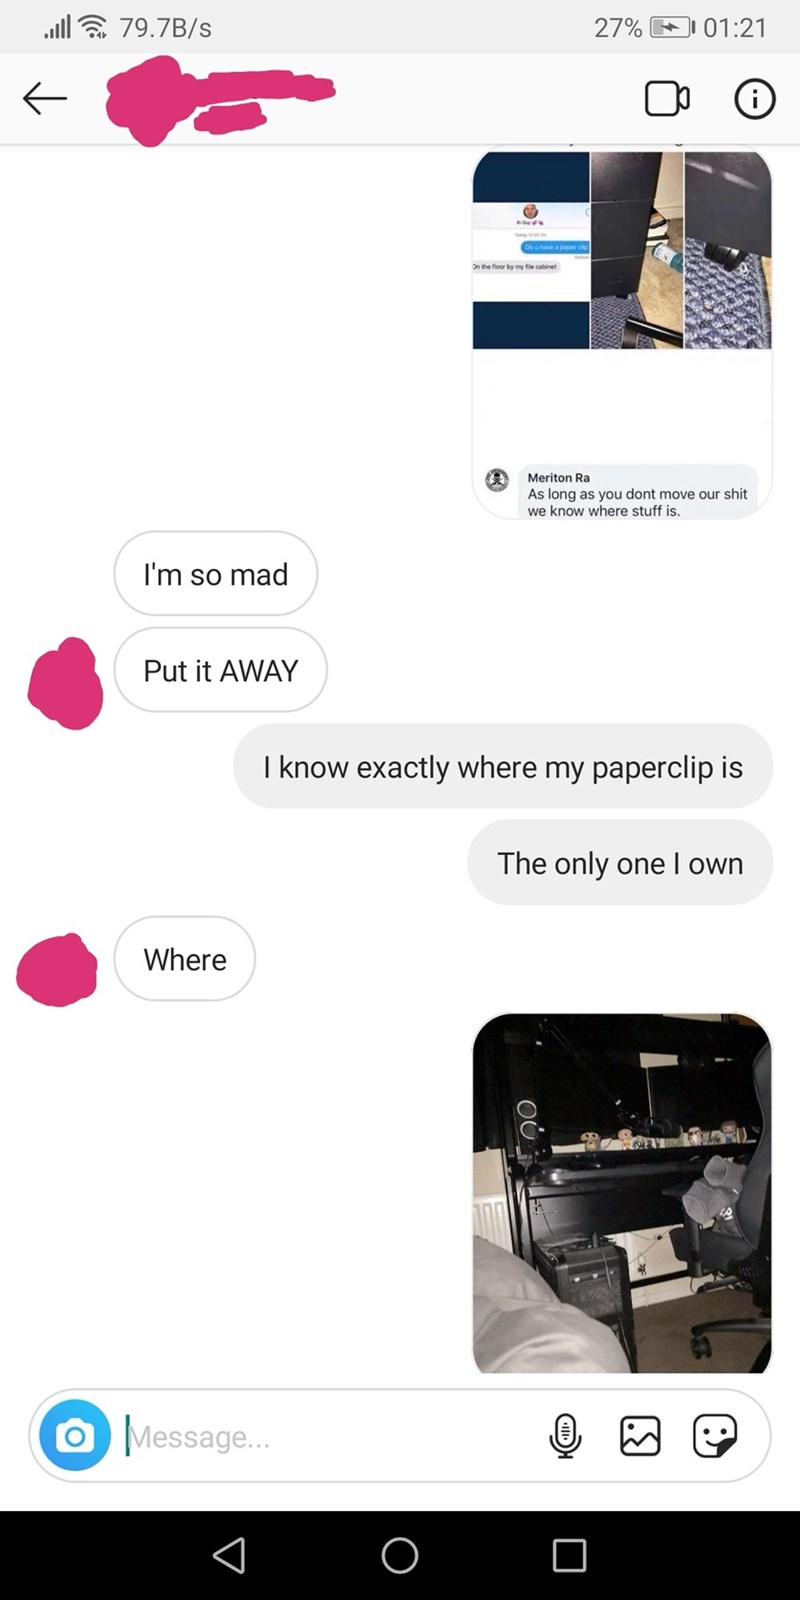 Text - all & 79.7B/s 1 01:21 27% Do u have a paper cip On the floor by my file cabinet Meriton Ra As long as you dont move our shit we know where stuff is. I'm so mad Put it AWAY I know exactly where my paperclip is The only one I own Where O Message...